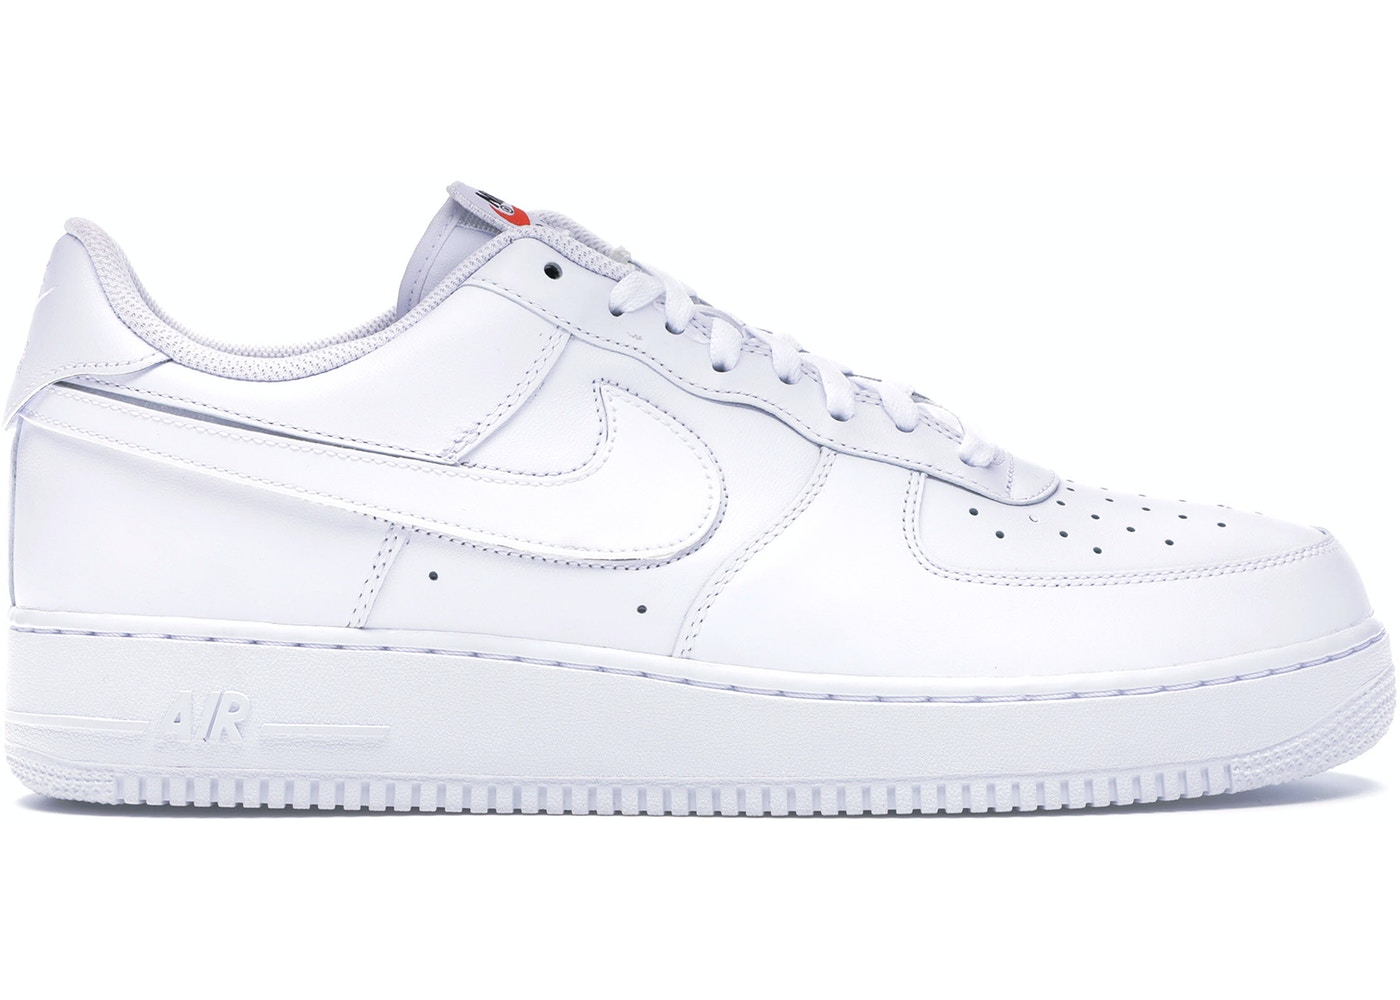 new arrival 1f45c 2967b Air Force 1 Low Swoosh Pack All-Star 2018 (White) - AH8462-102